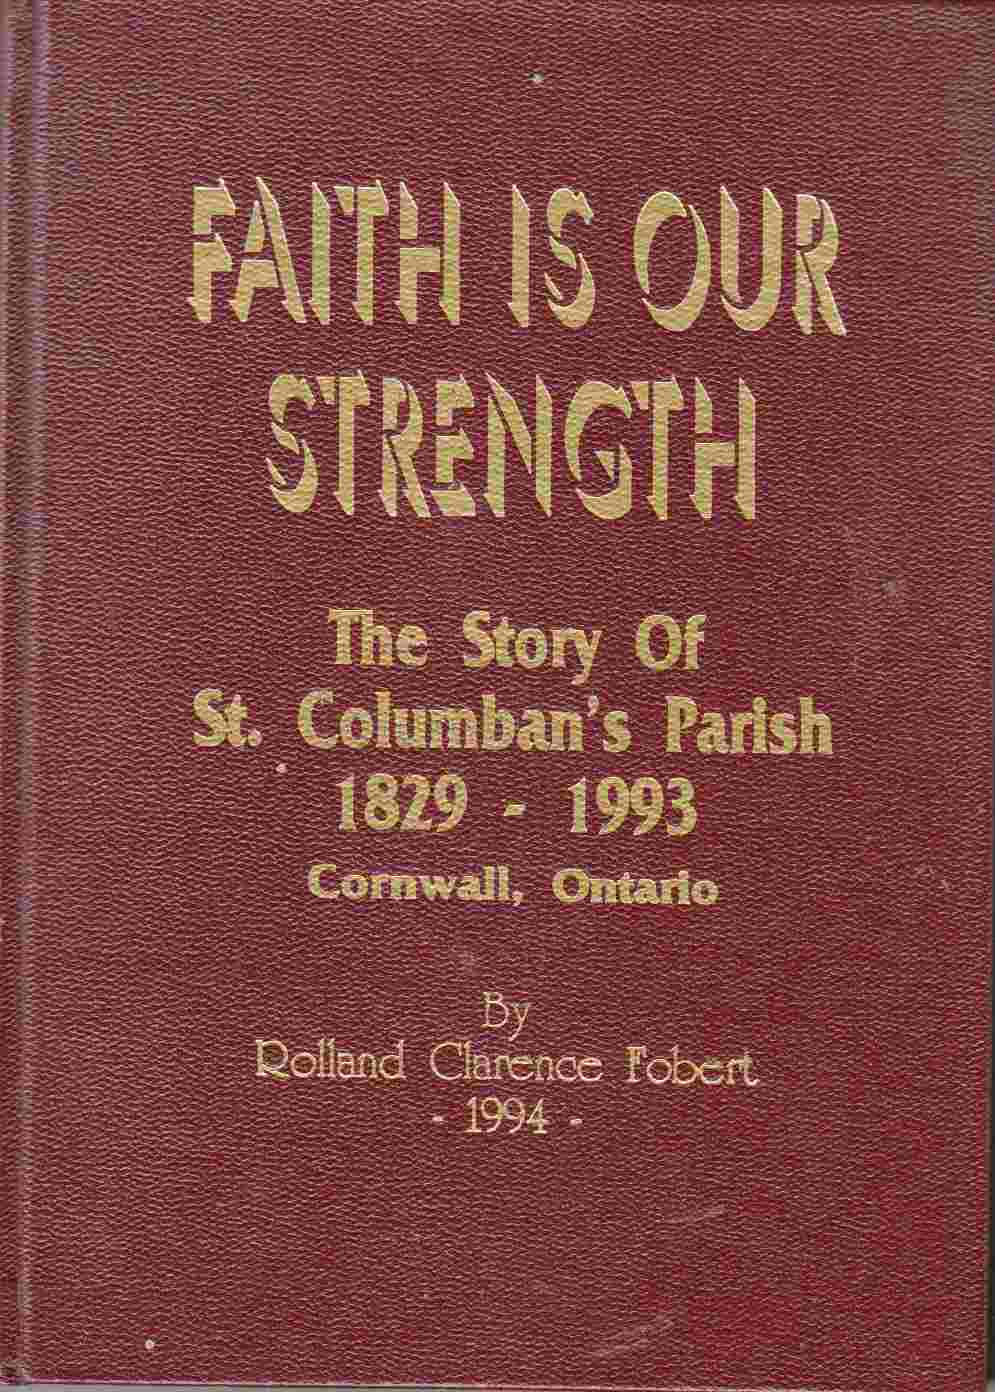 Image for Faith is Our Strength The Story of St. Columban's Parish 1829 - 1993 Cornwall, Ontario